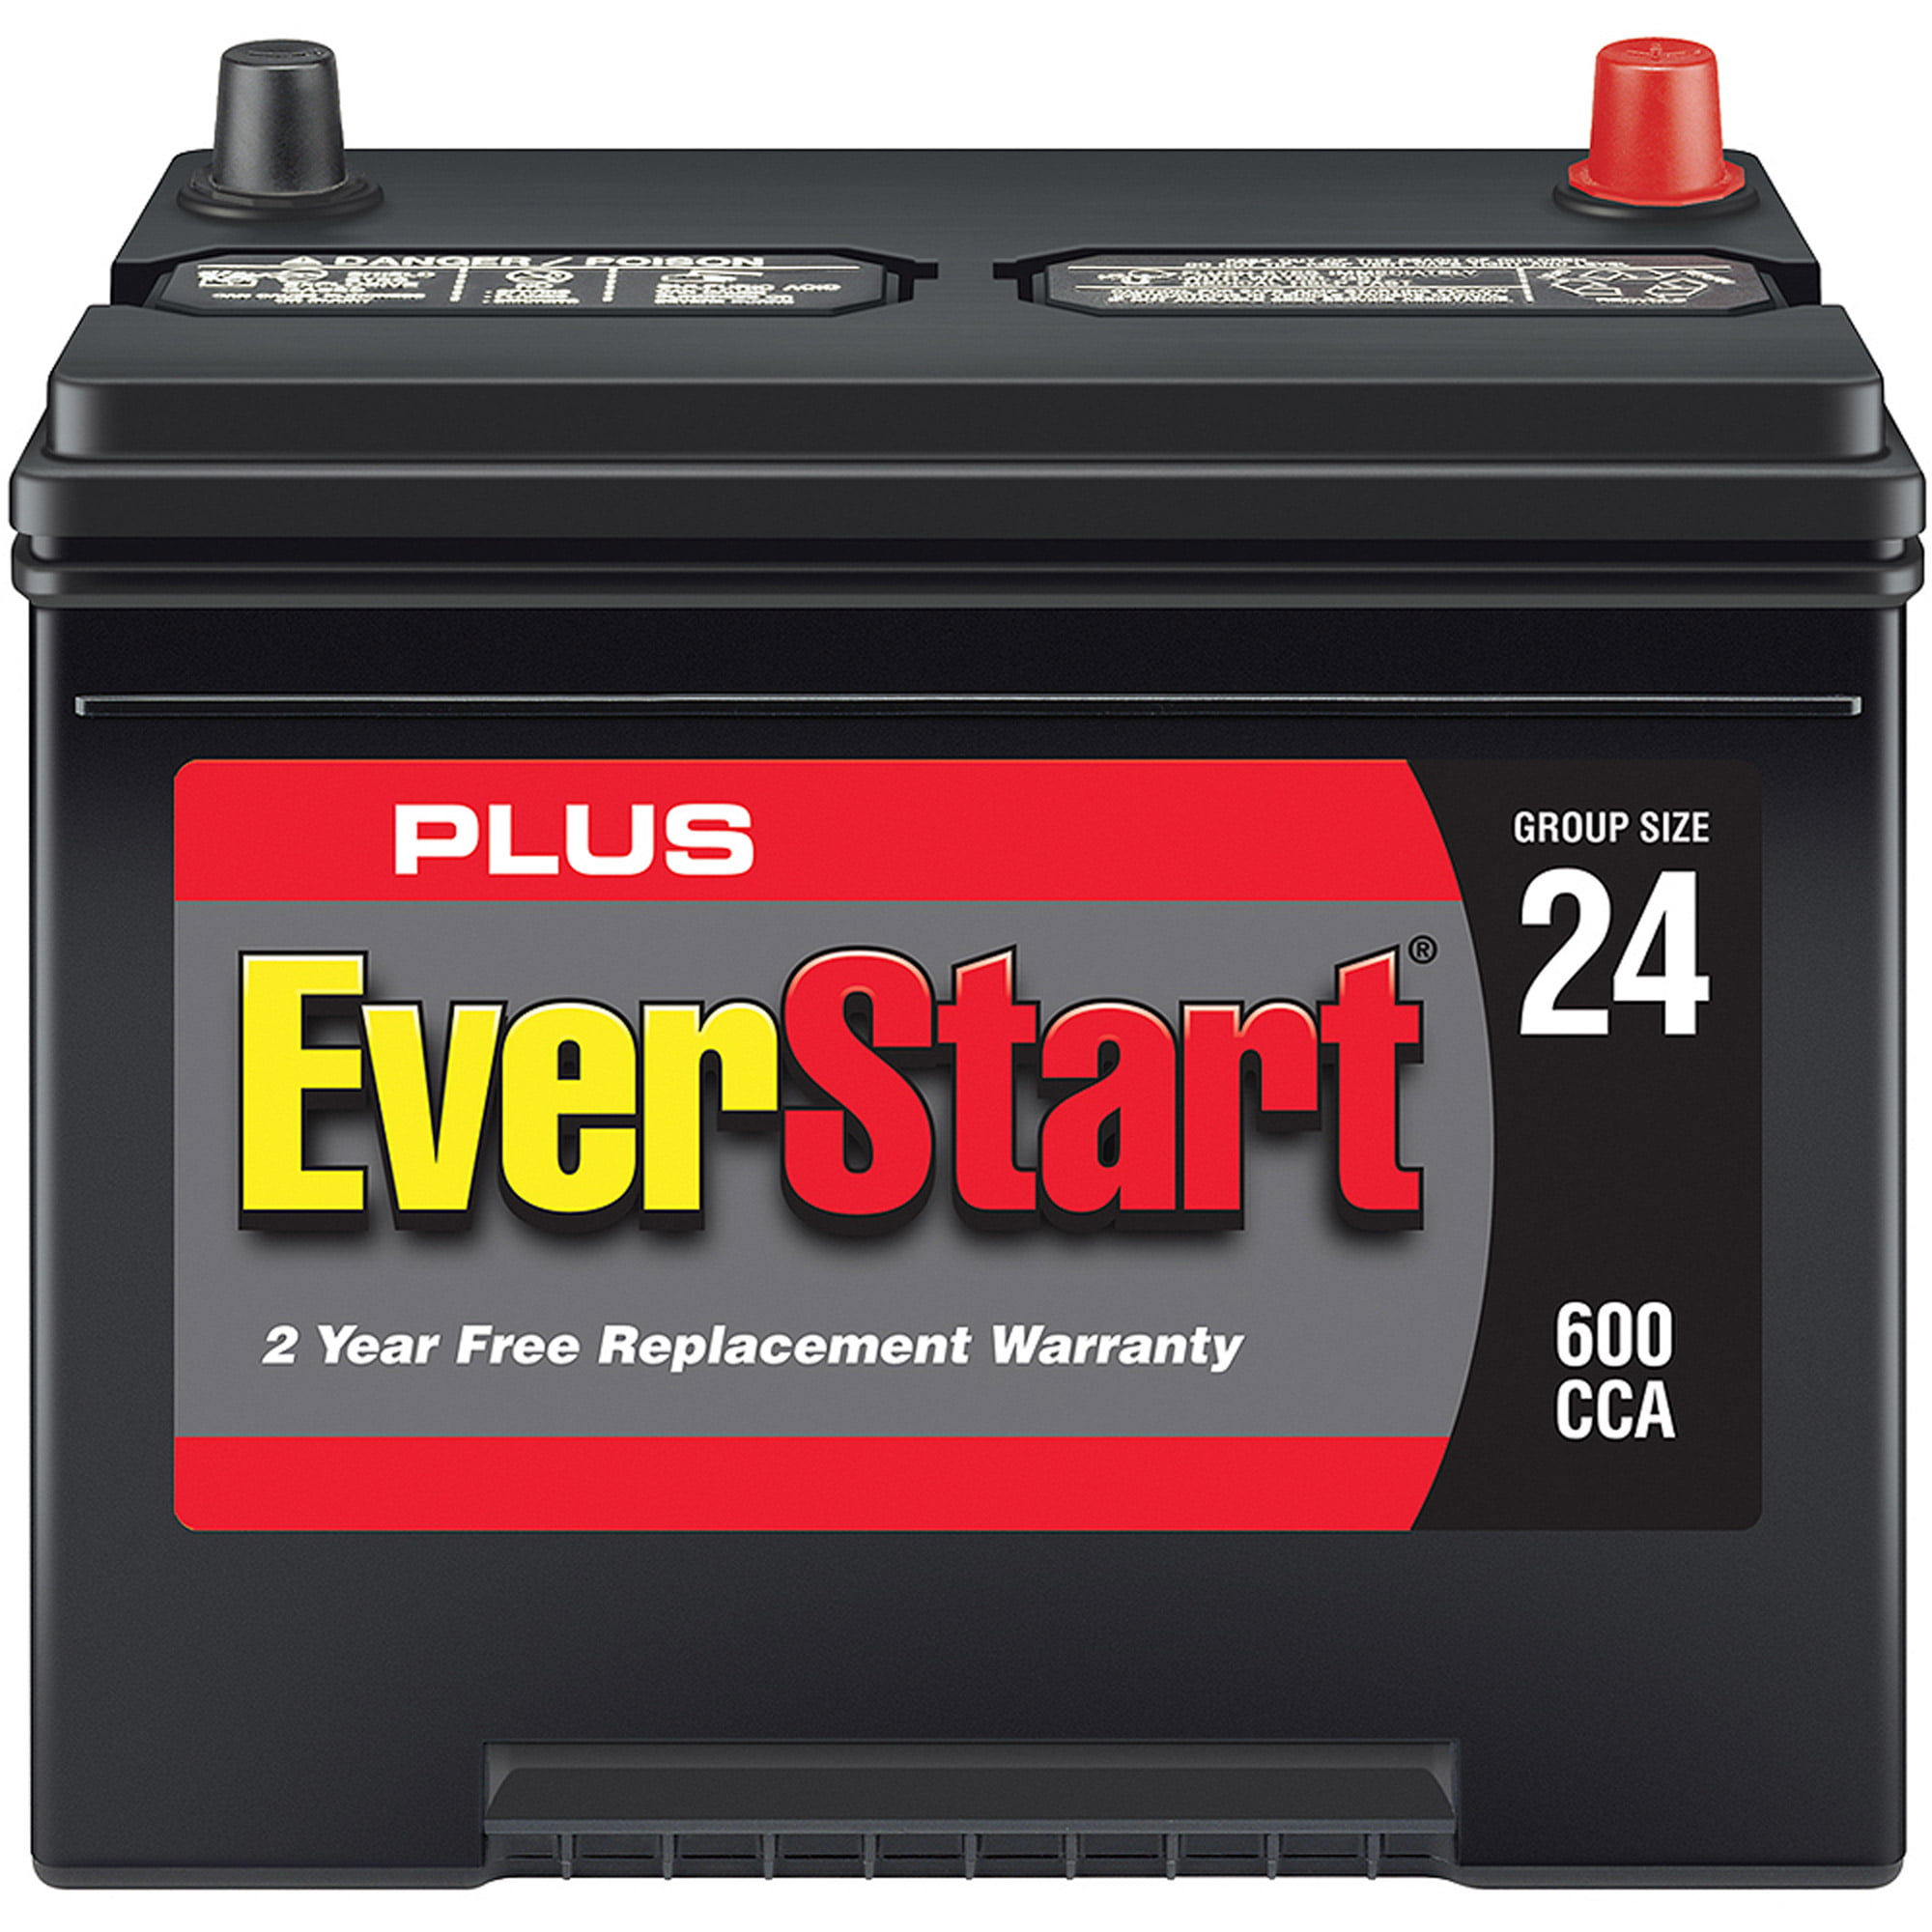 Shop for Car Battery in Batteries and Accessories. Buy products such as ValuePower Lead Acid Automotive Battery, Group 24F at Walmart and save.